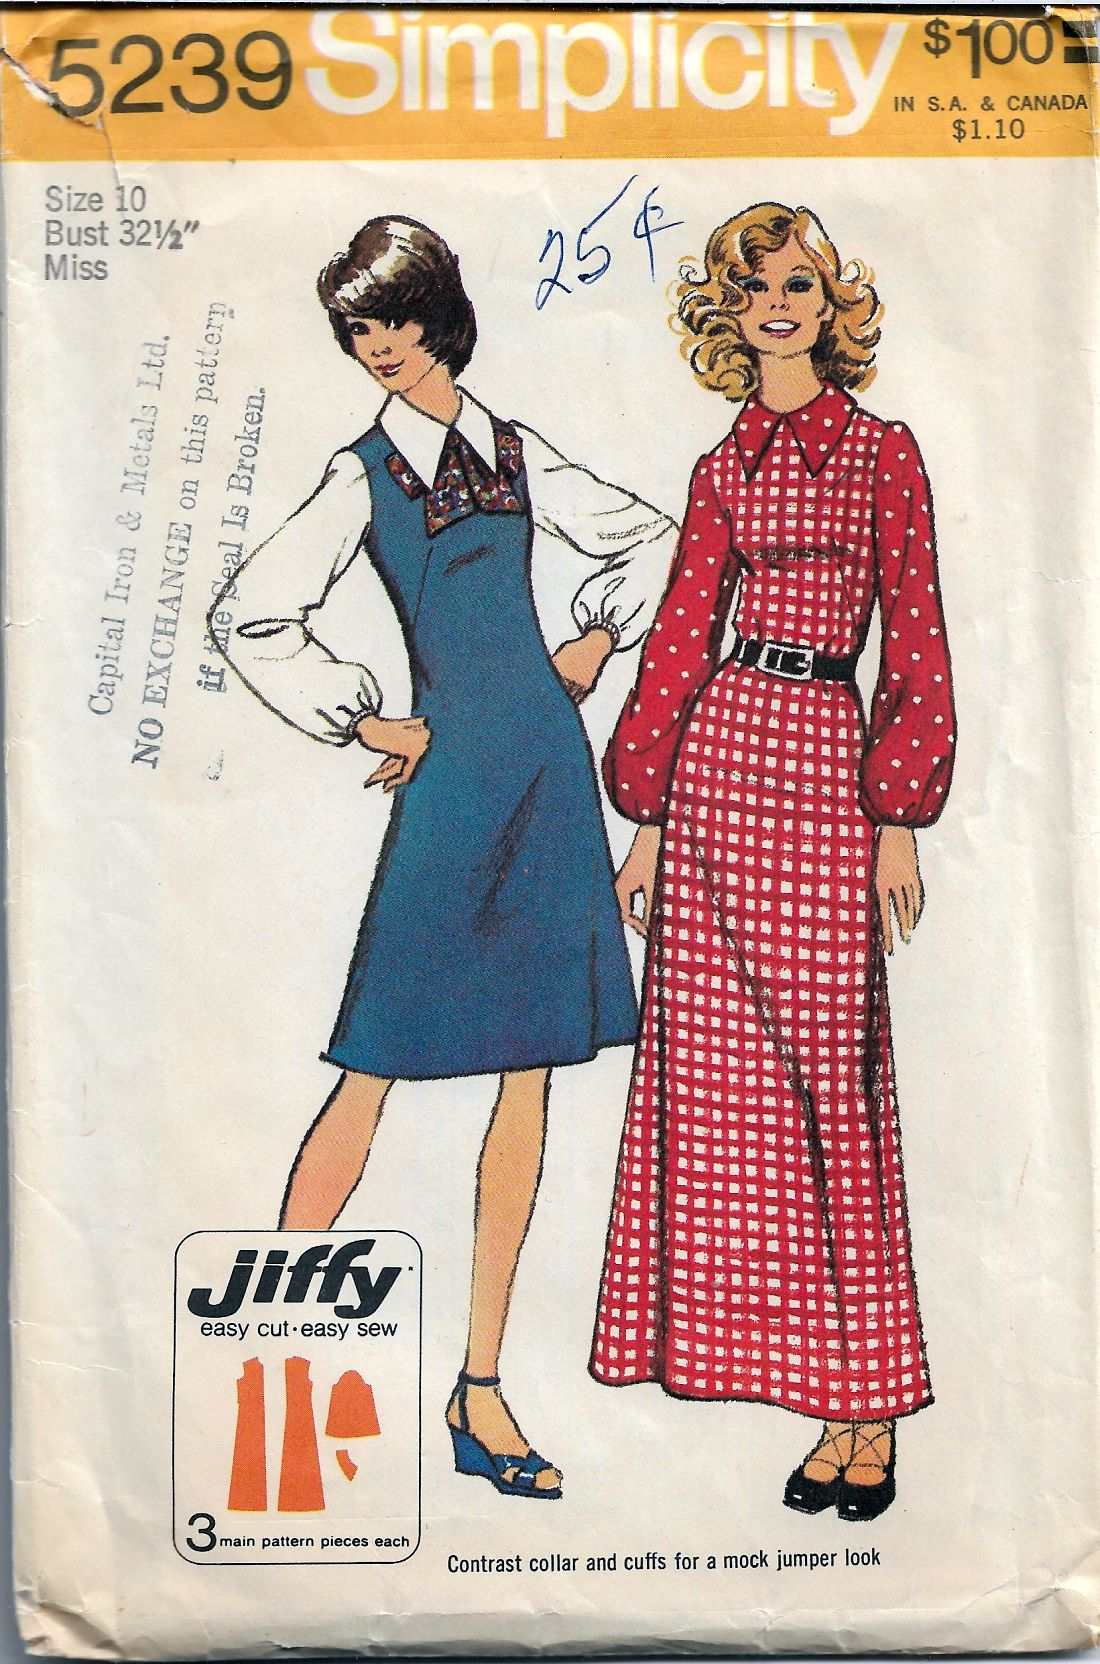 Simplicity 5239 Vintage Sewing Pattern 1970's Ladies Dress Jiffy - VintageStitching - Vintage Sewing Patterns